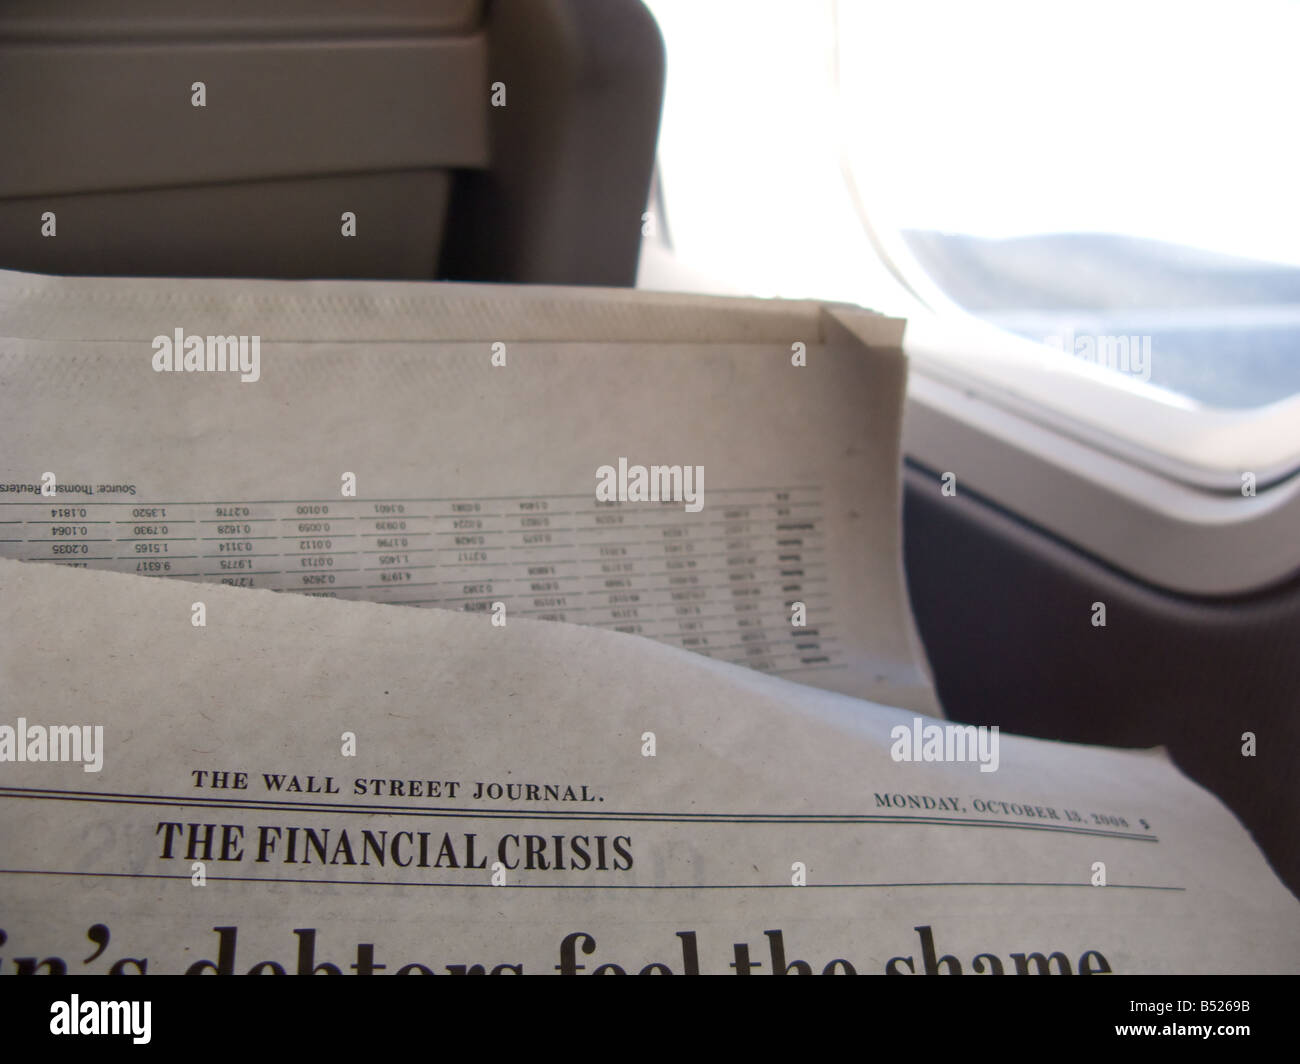 The Wall Street Journal s October 13th 2008 page on the financial crisis / crash - Stock Image